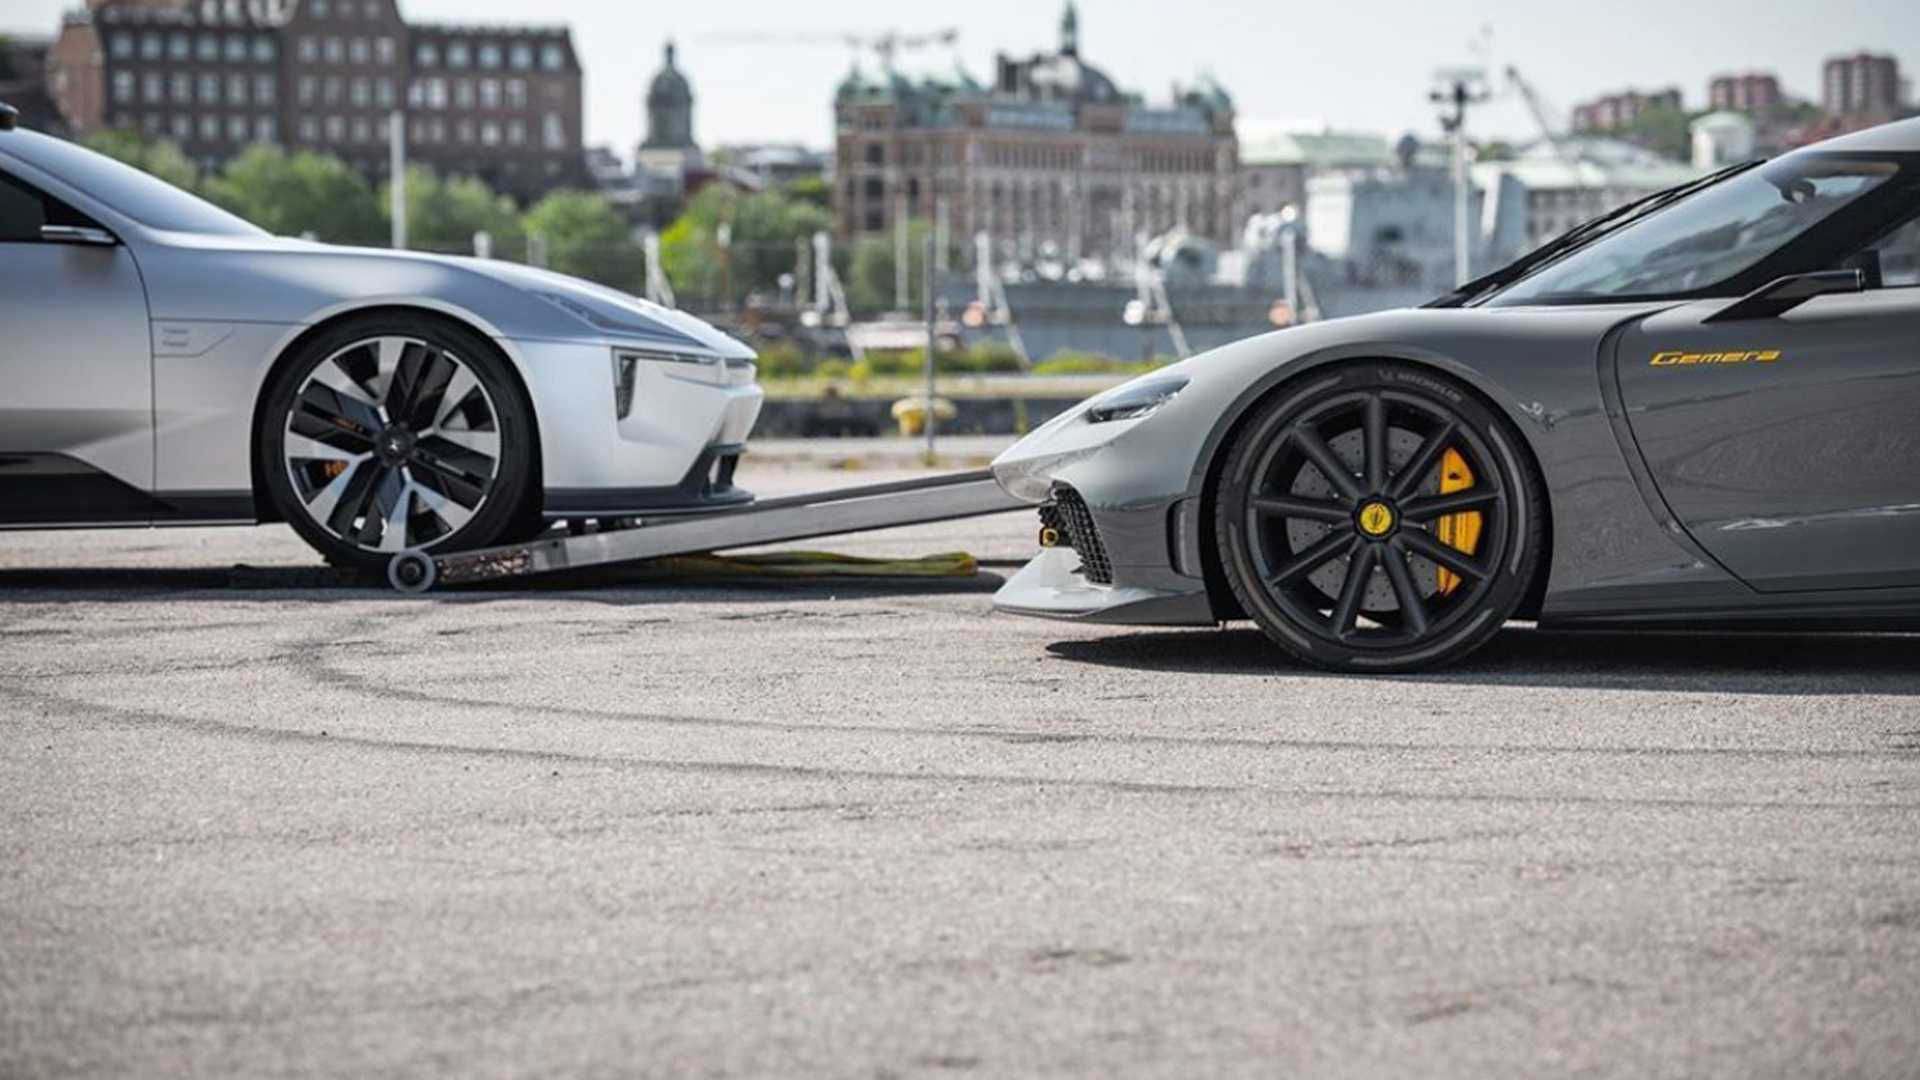 One would think the only thing in common between Koenigsegg and Polestar is that both are Swedish carmakers. With the former specializing in crazy hypercars and the latter in EVs, one wouldn't expect them to team up – but they did just that.